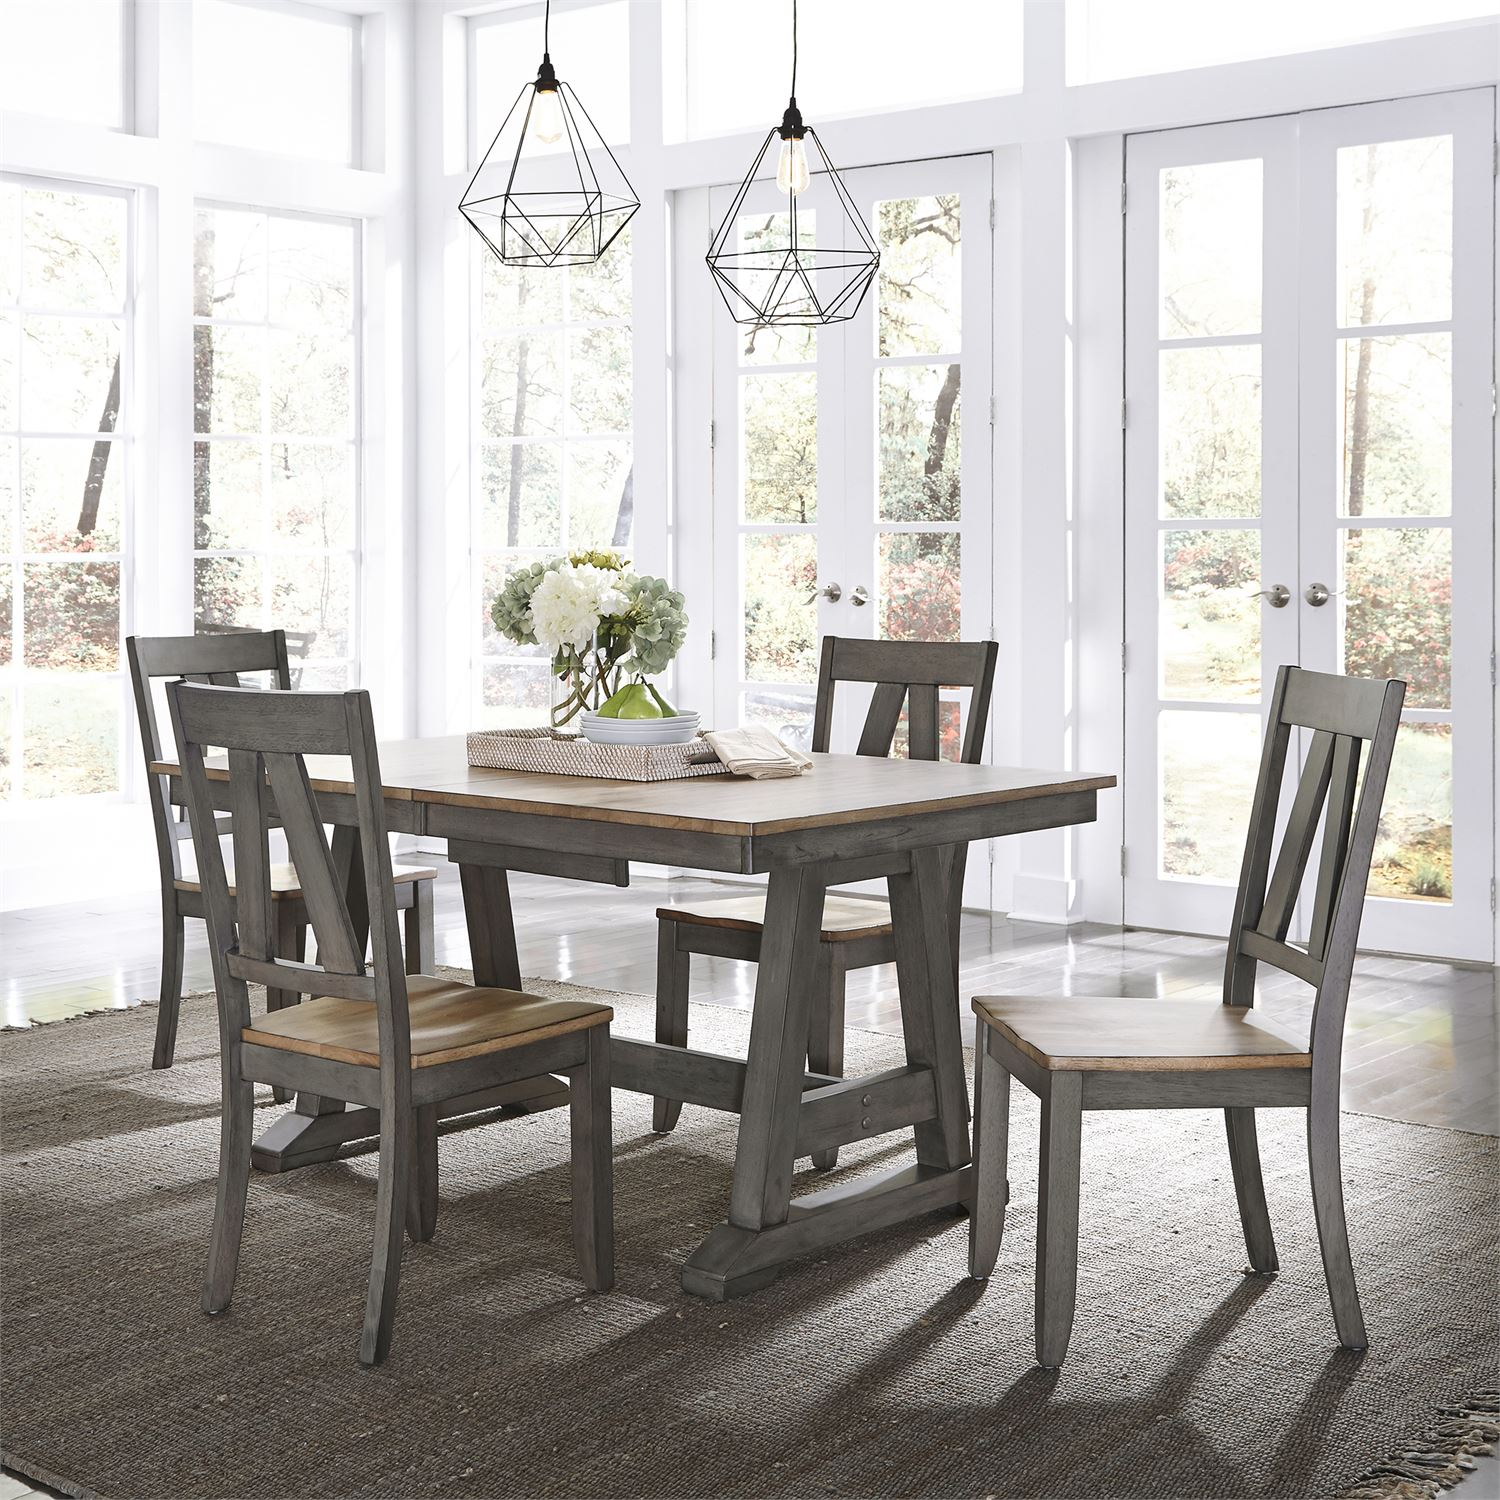 Lindsey Farm 5 piece Trestle Table set